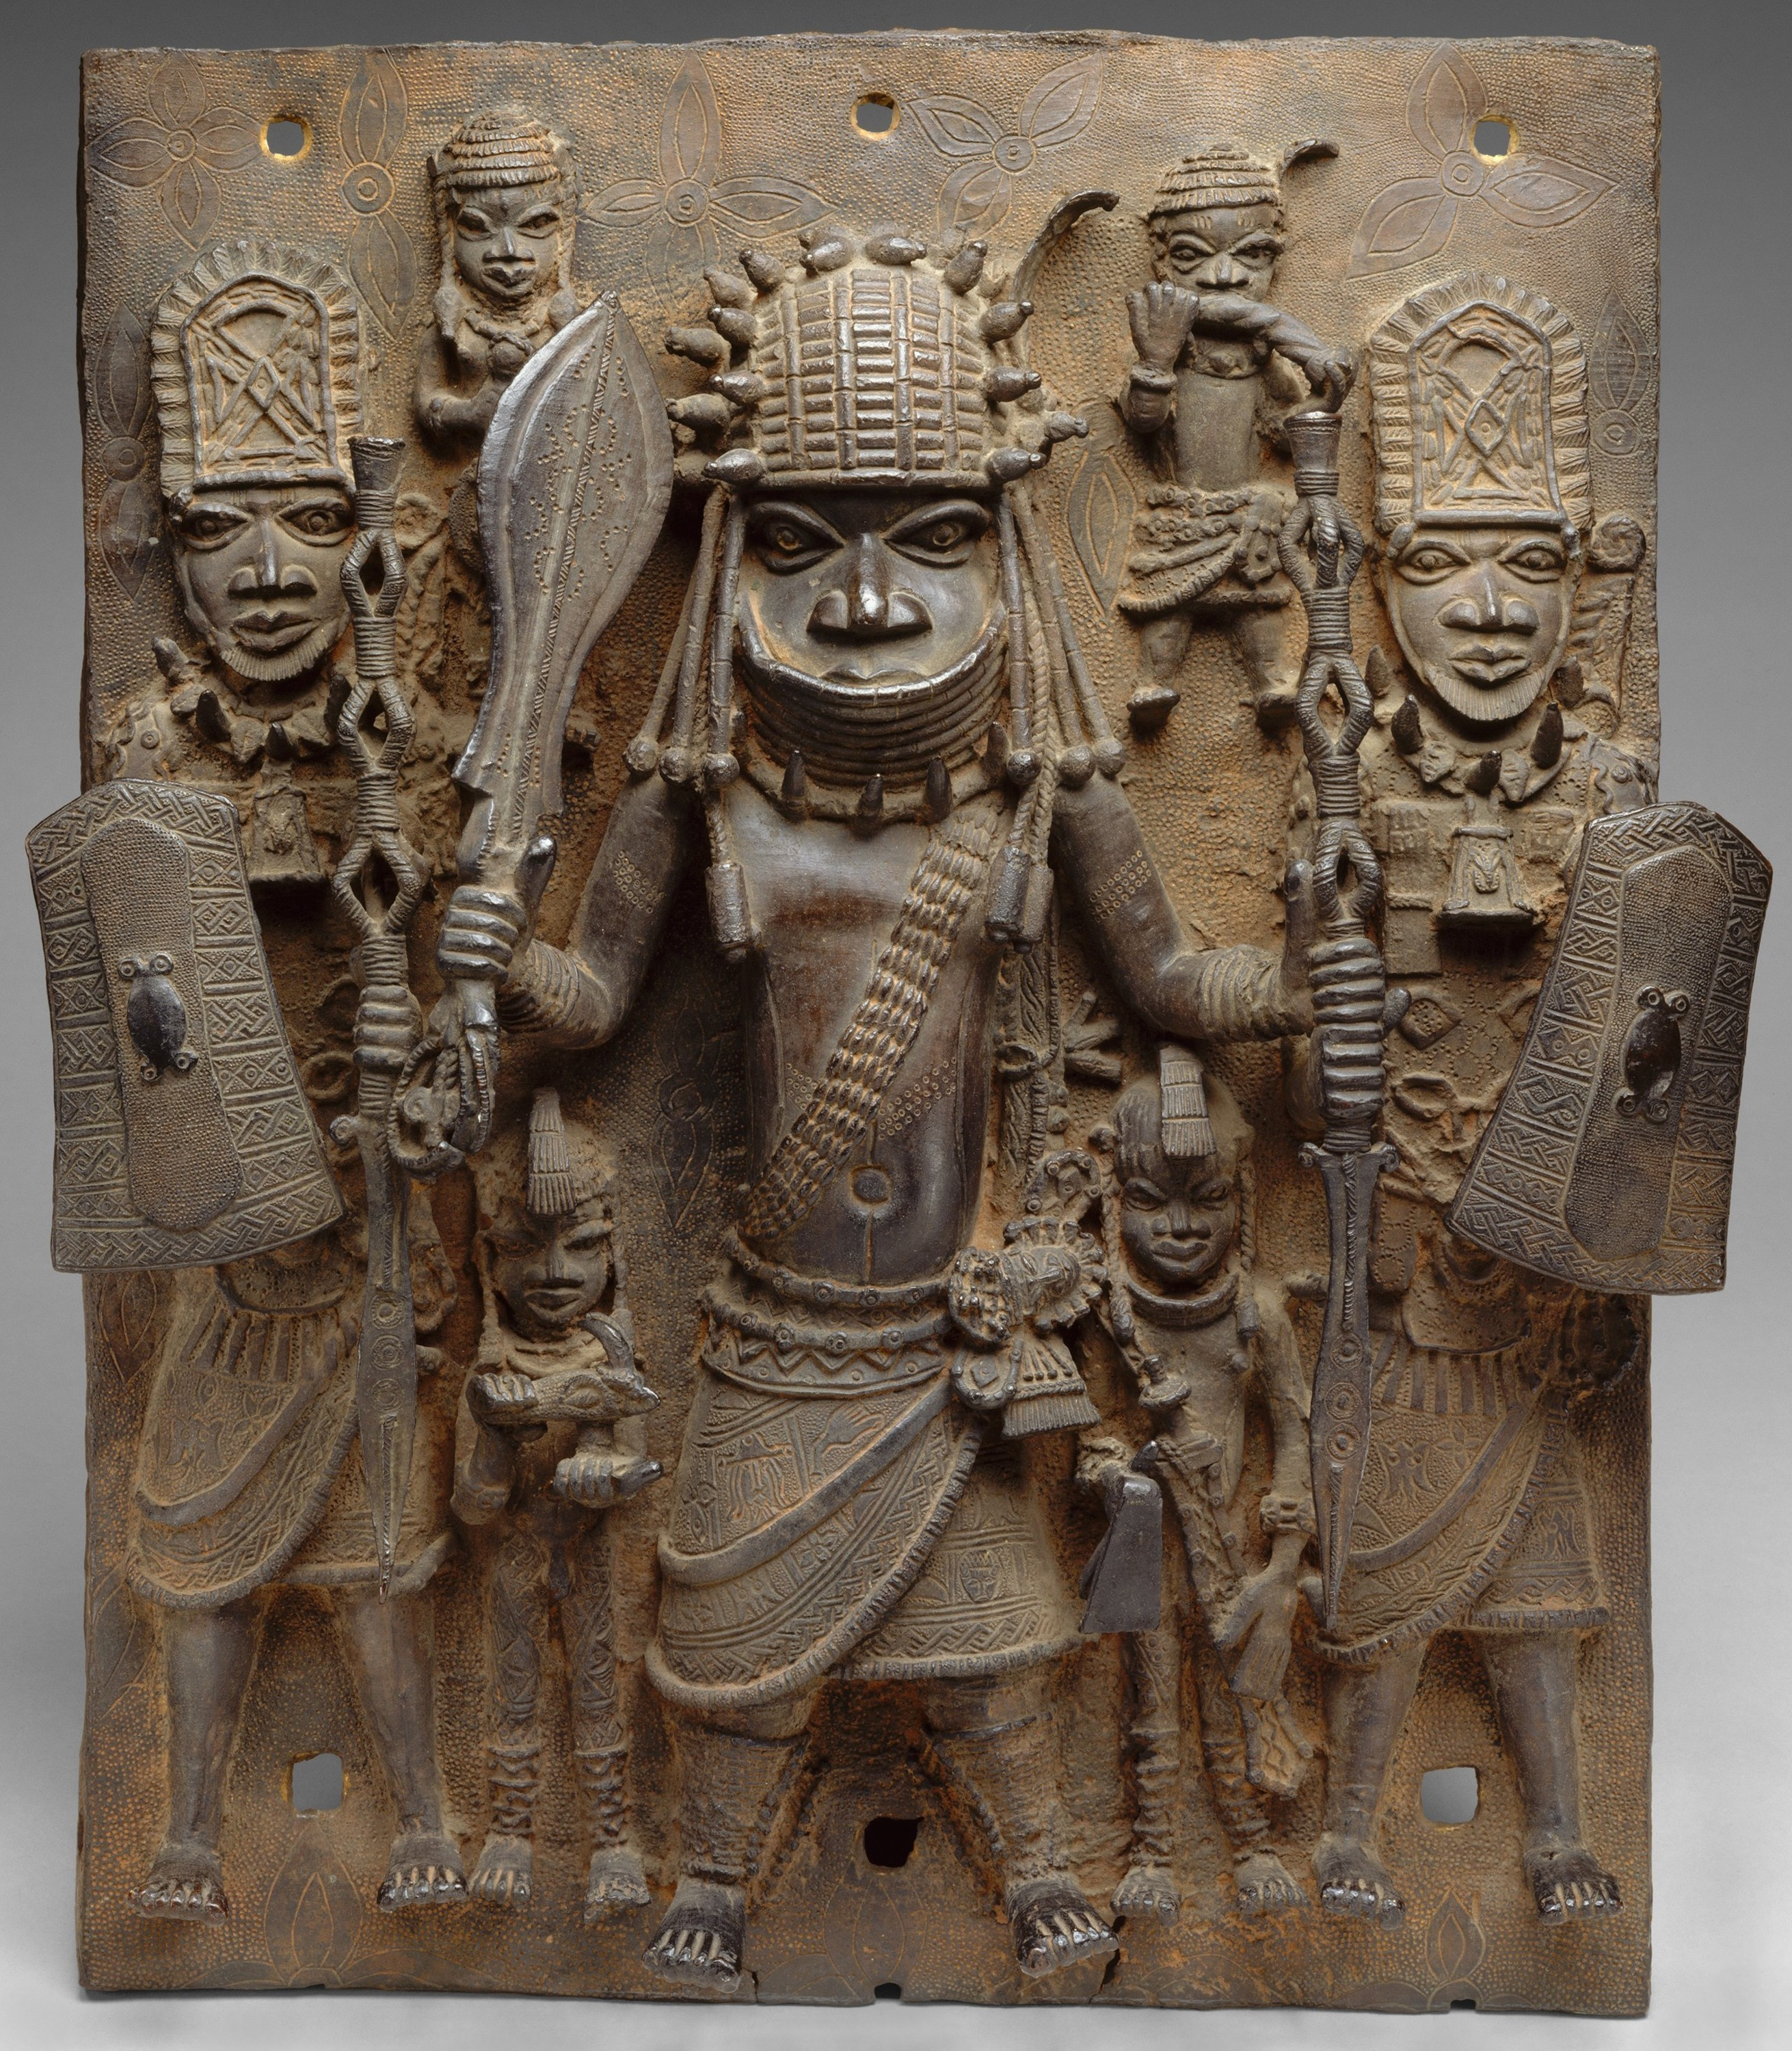 A plaque from Benin featuring what appear to be three soldiers in loincloths headdresses. They are brandishing clubs and shields.